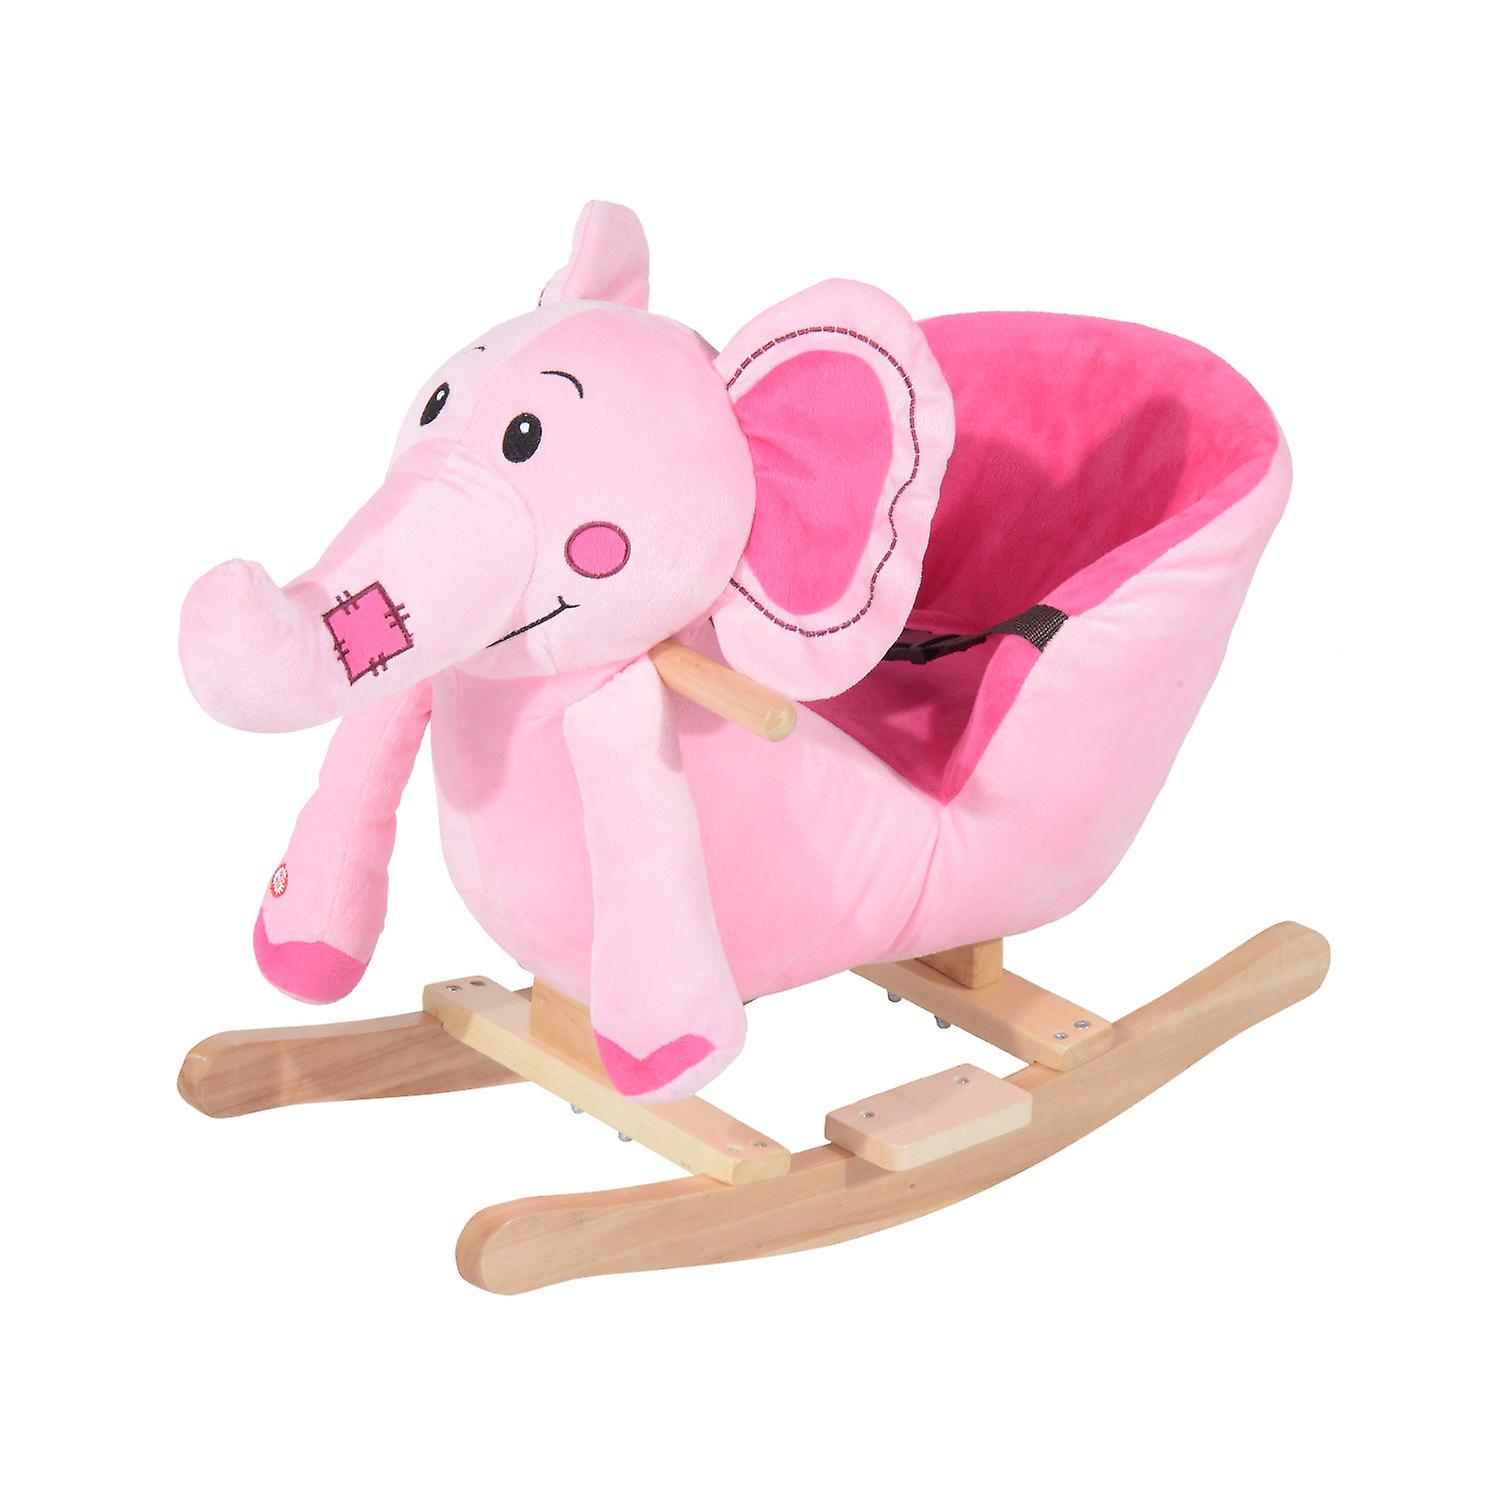 Homcom Children Kids Rocking Horse Toys Plush Elephant Rocker Seat With Sound Toddler Baby Gift Pink